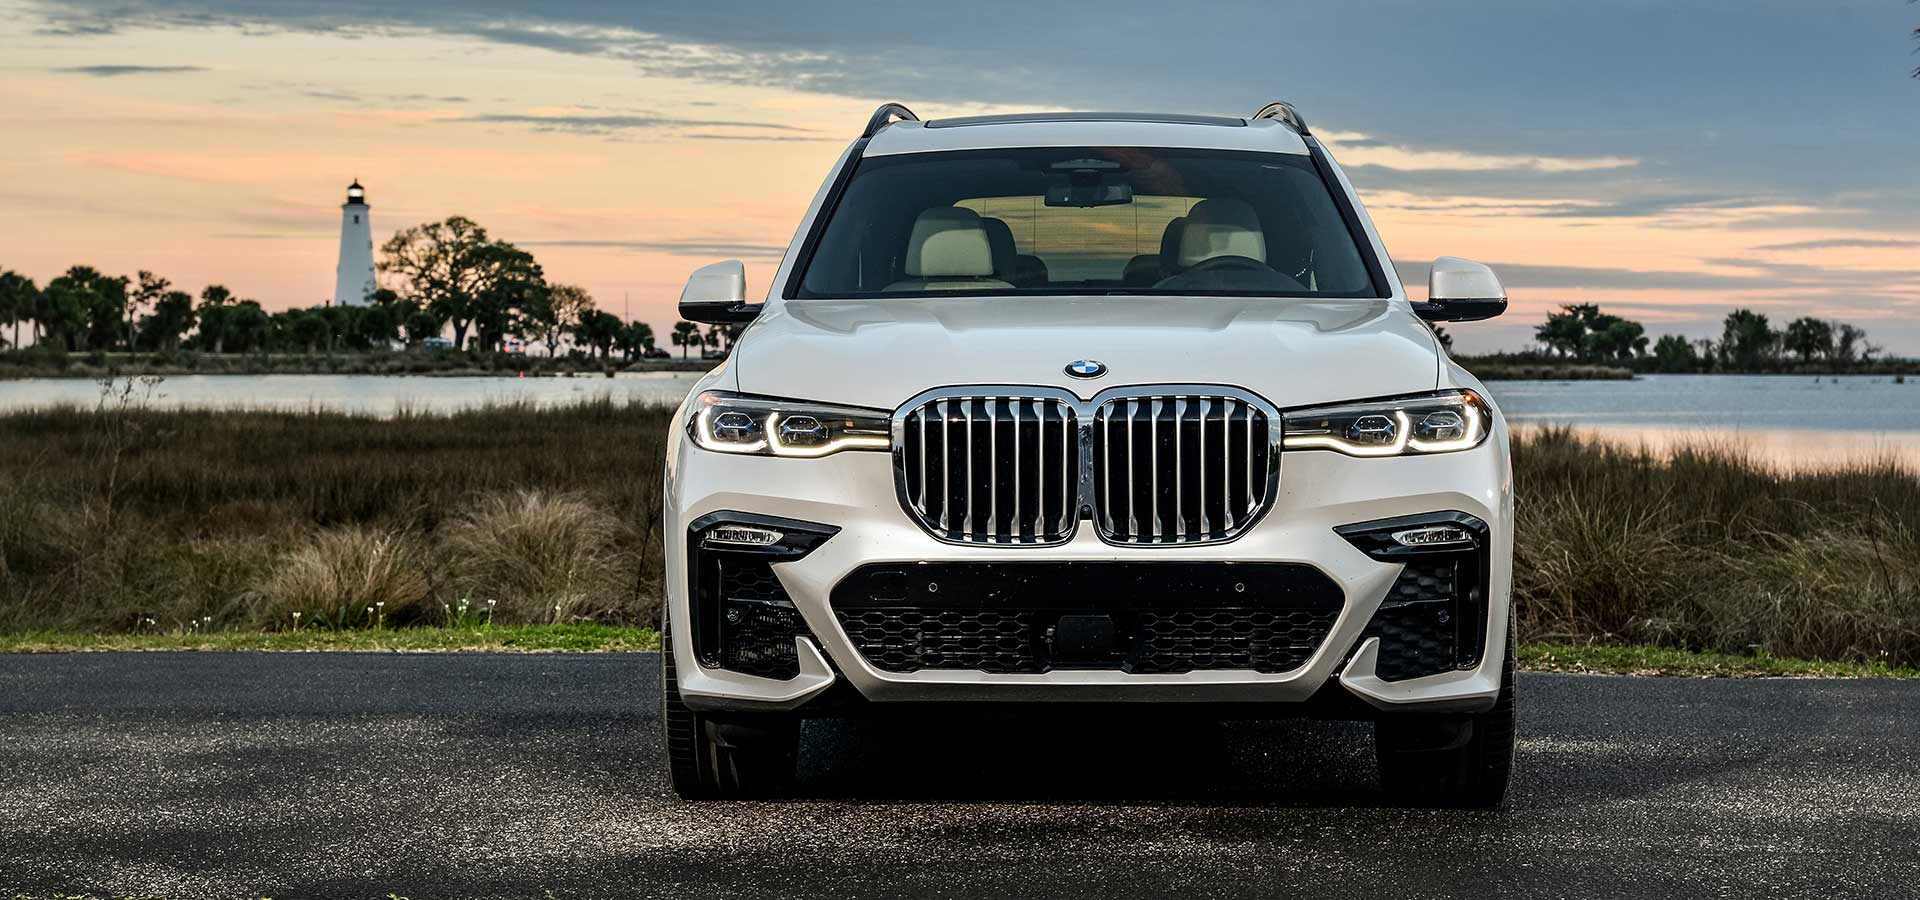 THE BMW X7, The SAV of the luxury class